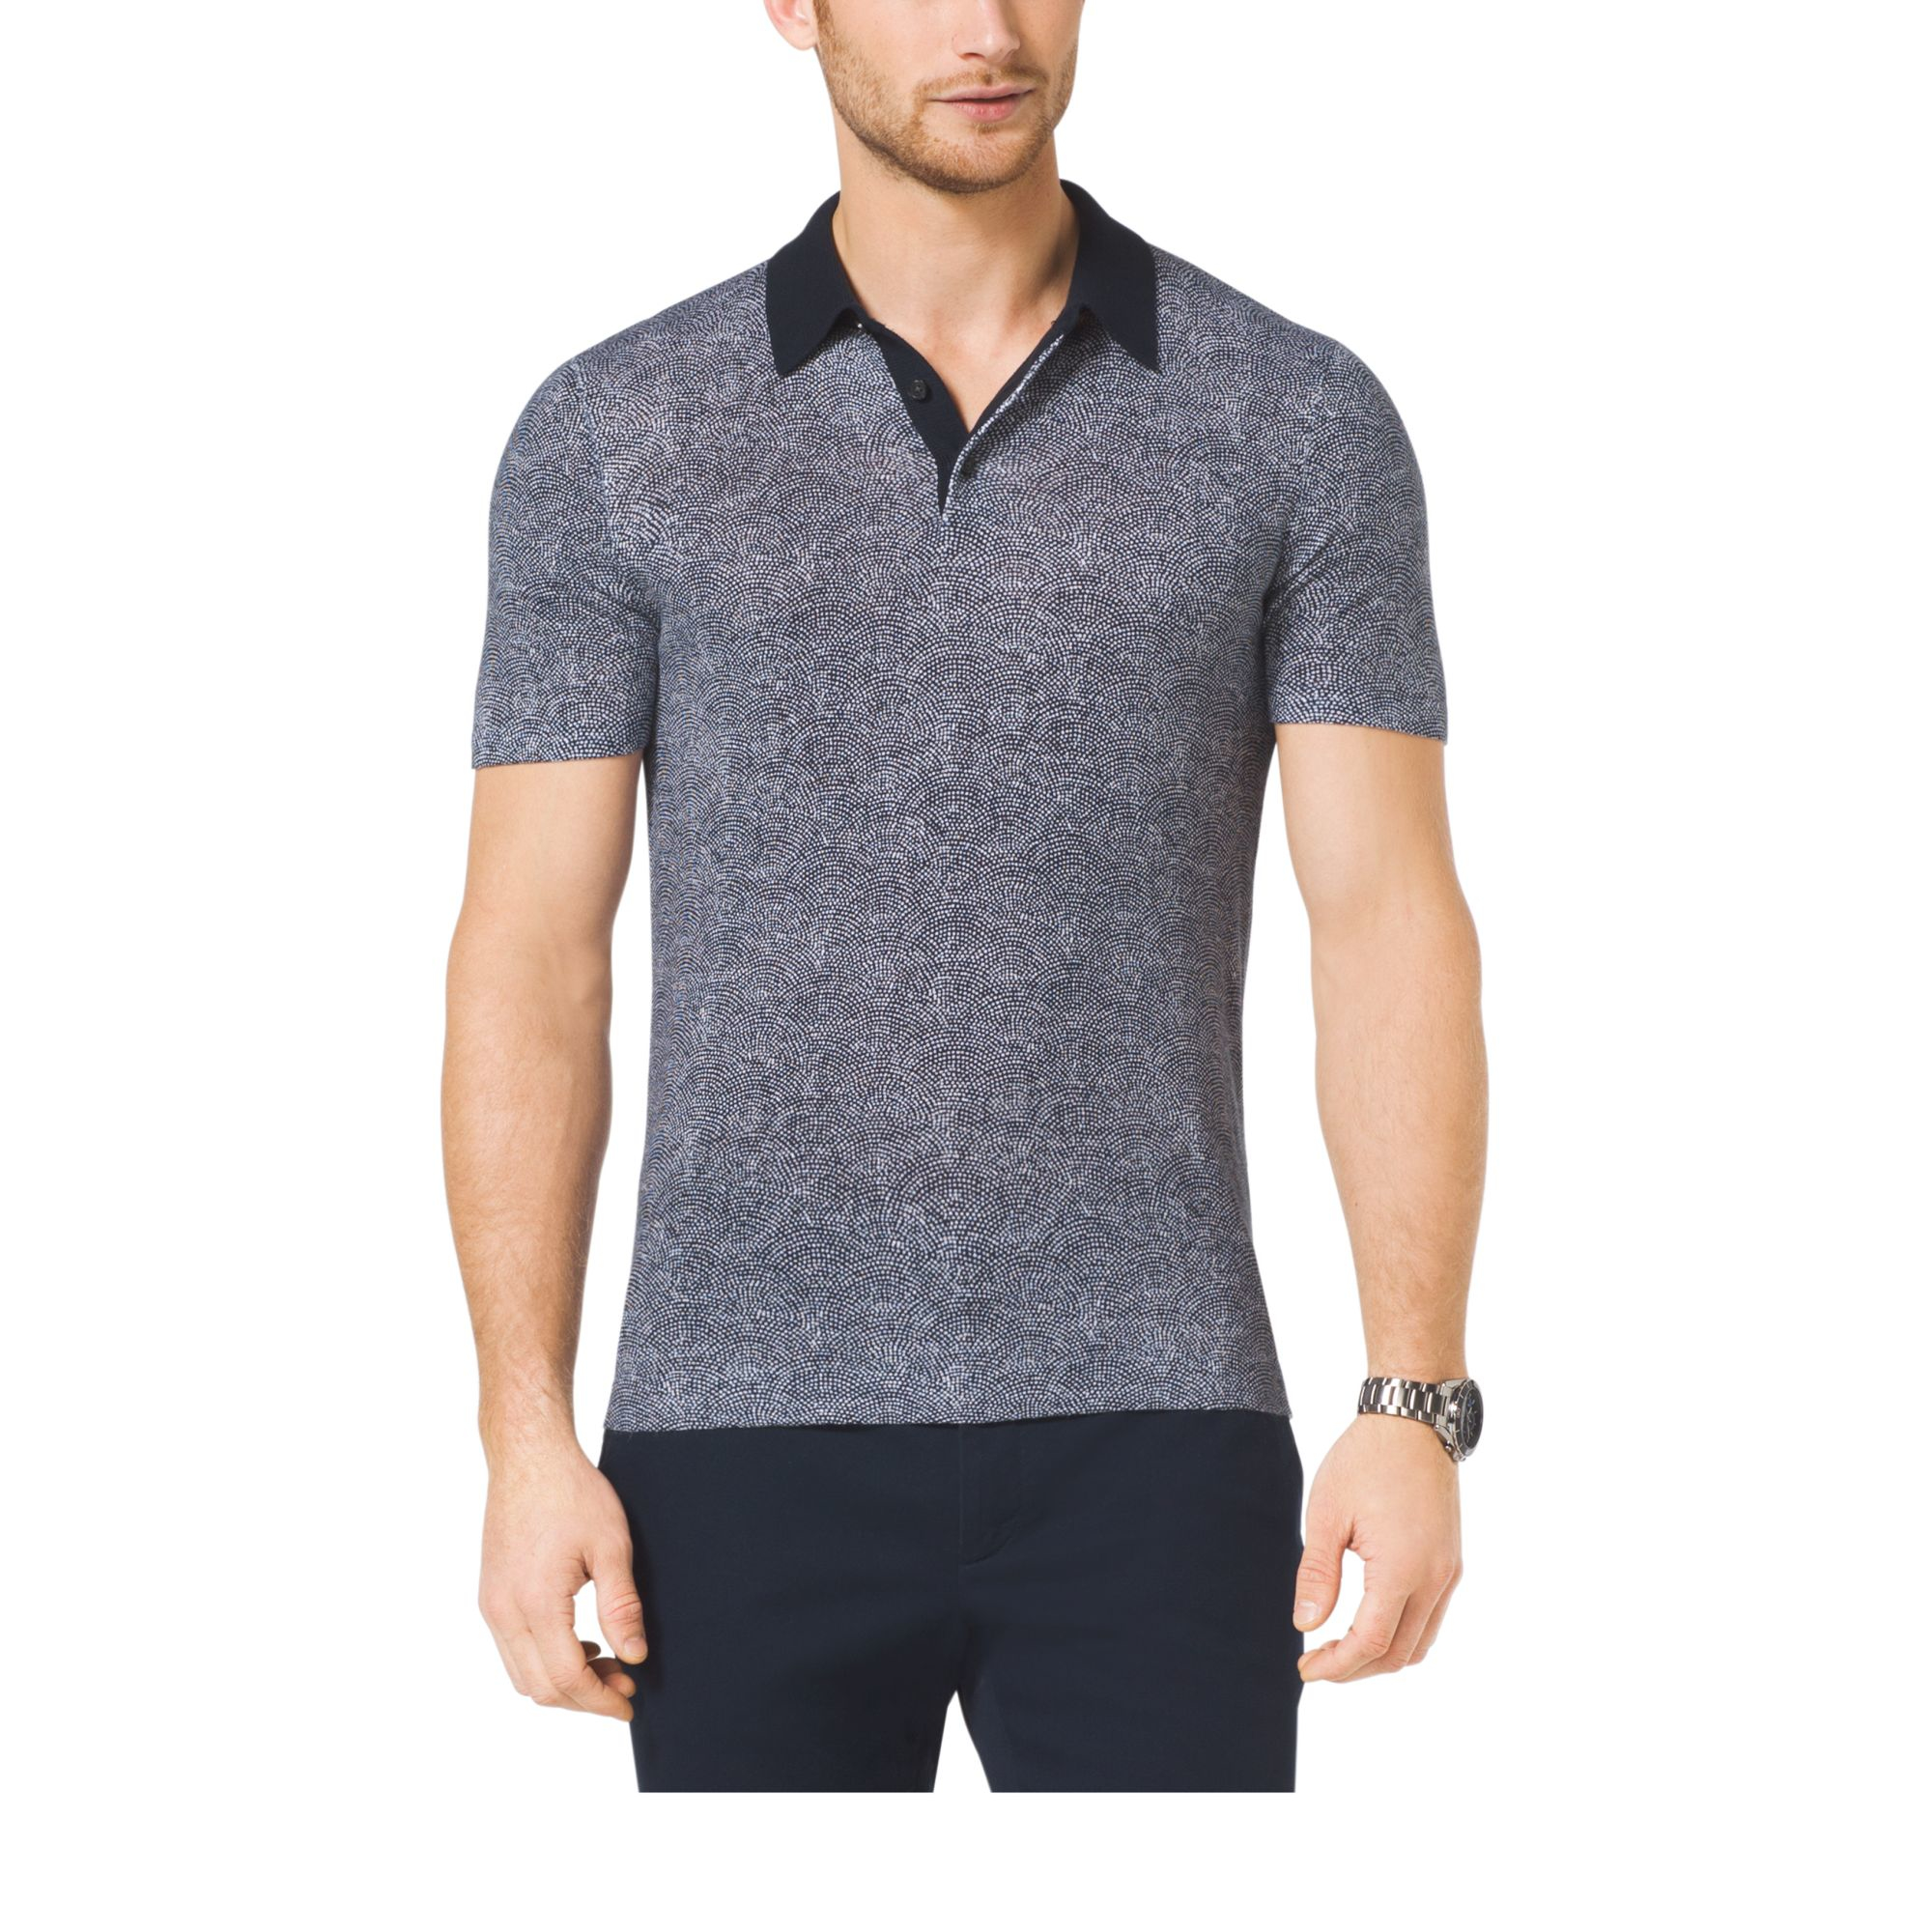 Michael Kors Linen And Cotton Polo Shirt In Gray For Men